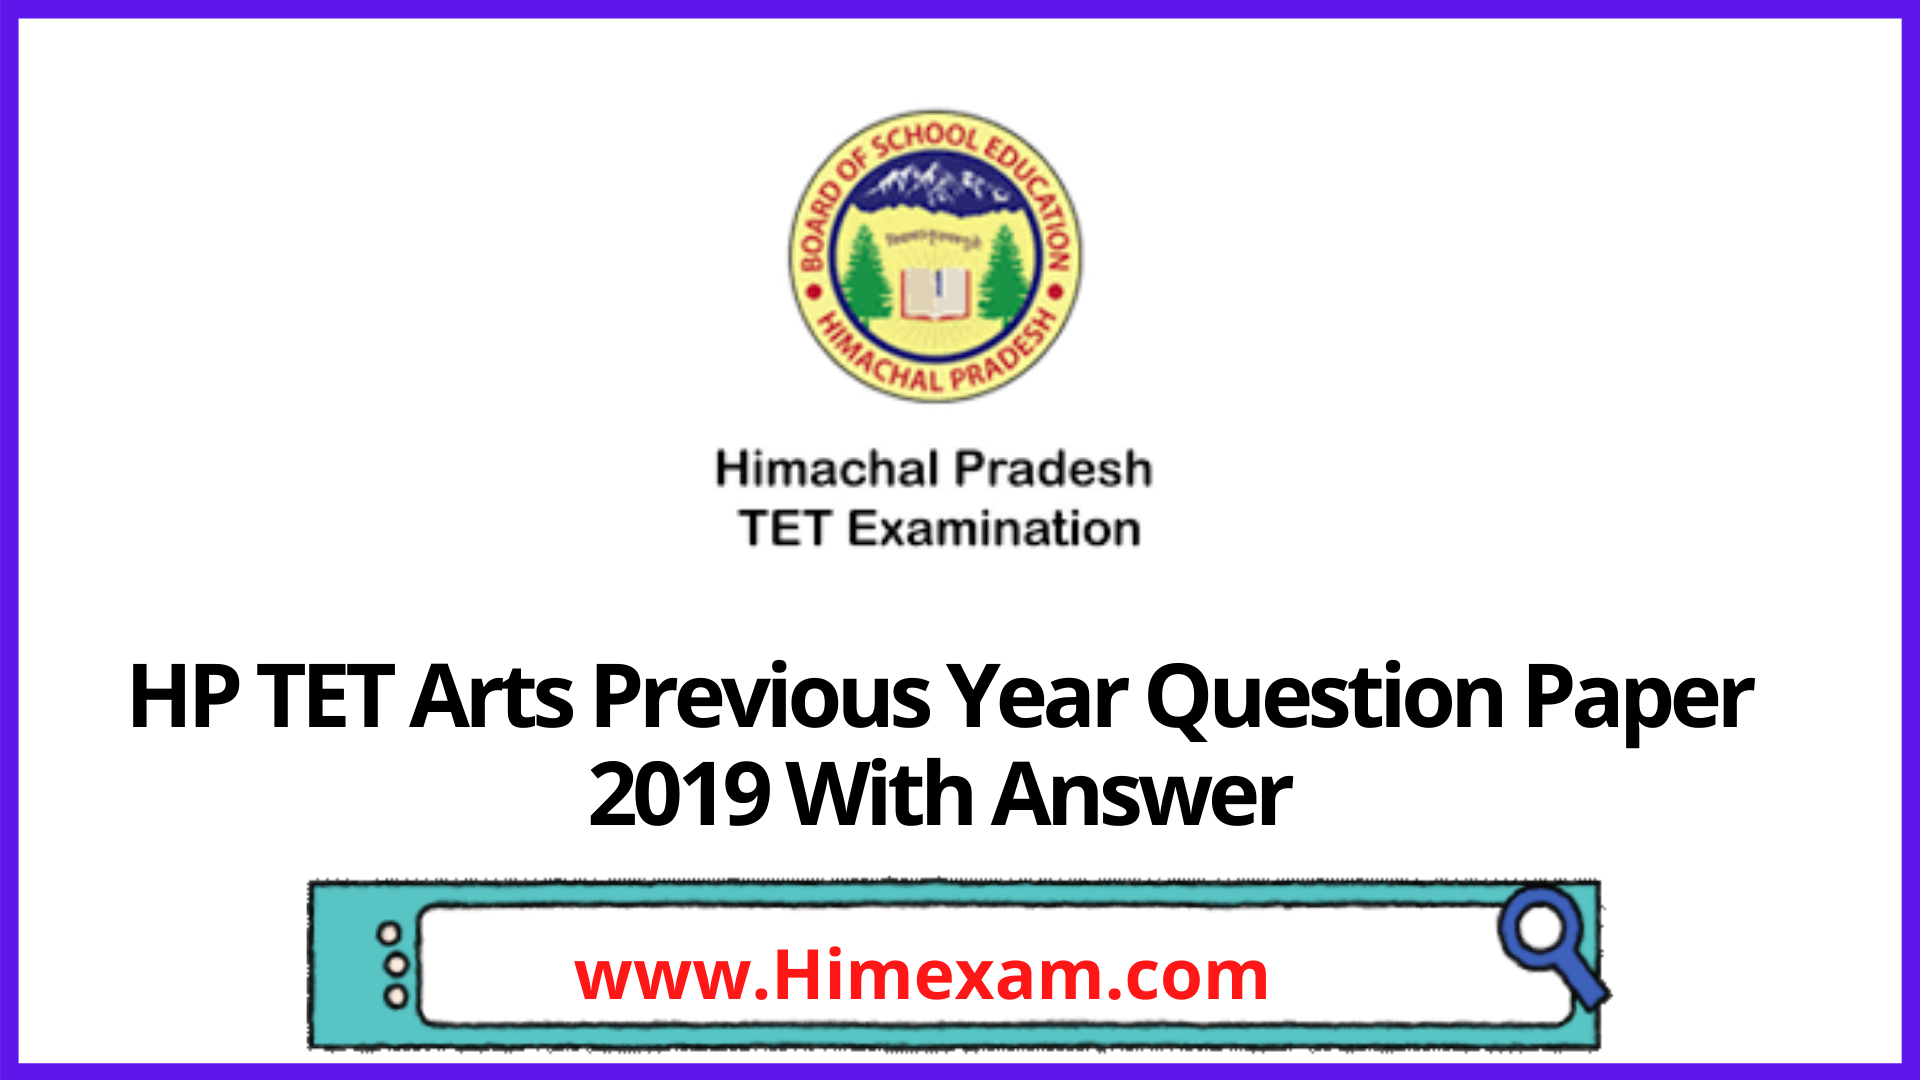 HP TET Arts Previous Year Question Paper 2019 With Answer